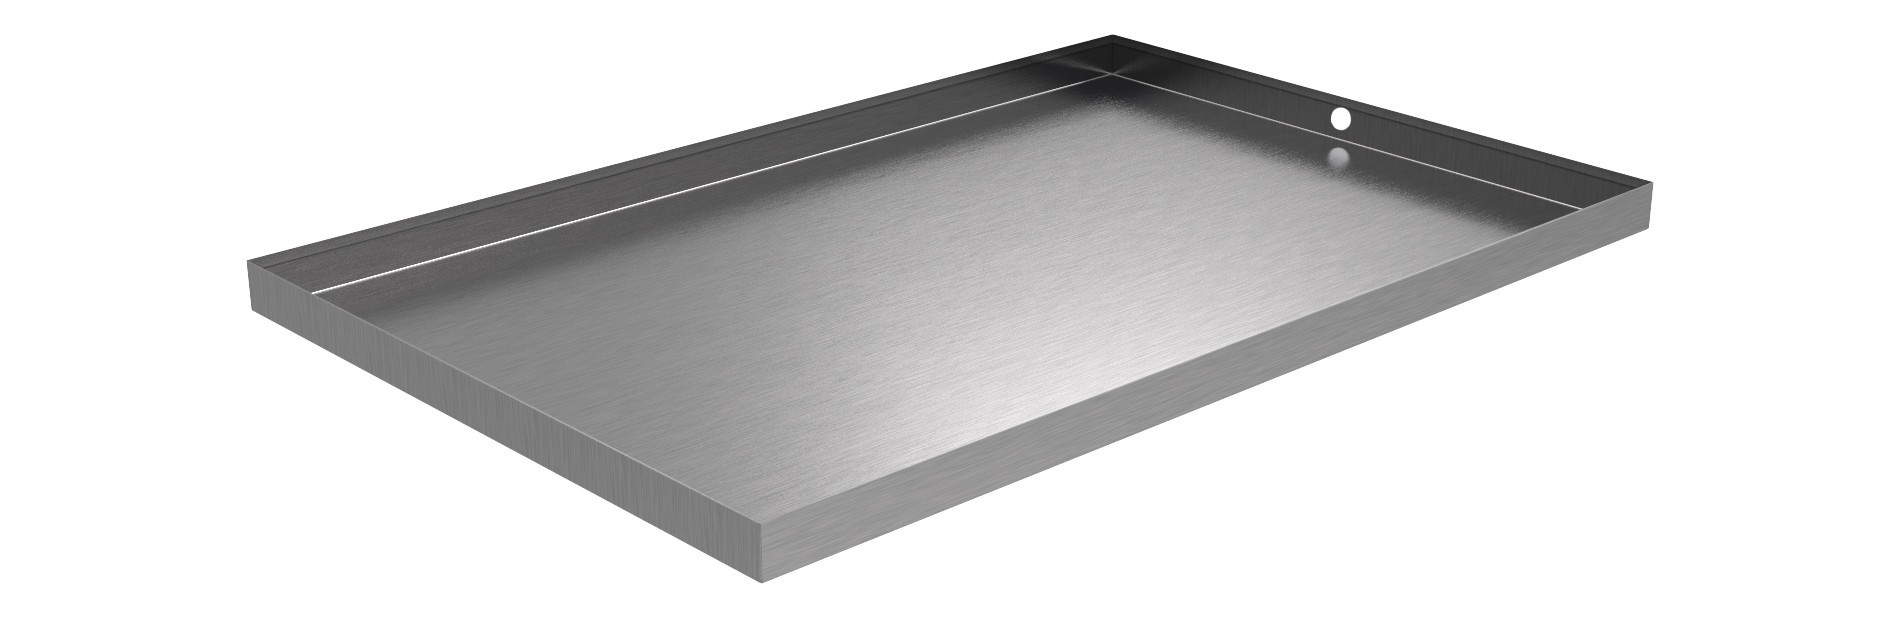 Stainless Steel Drip Pan